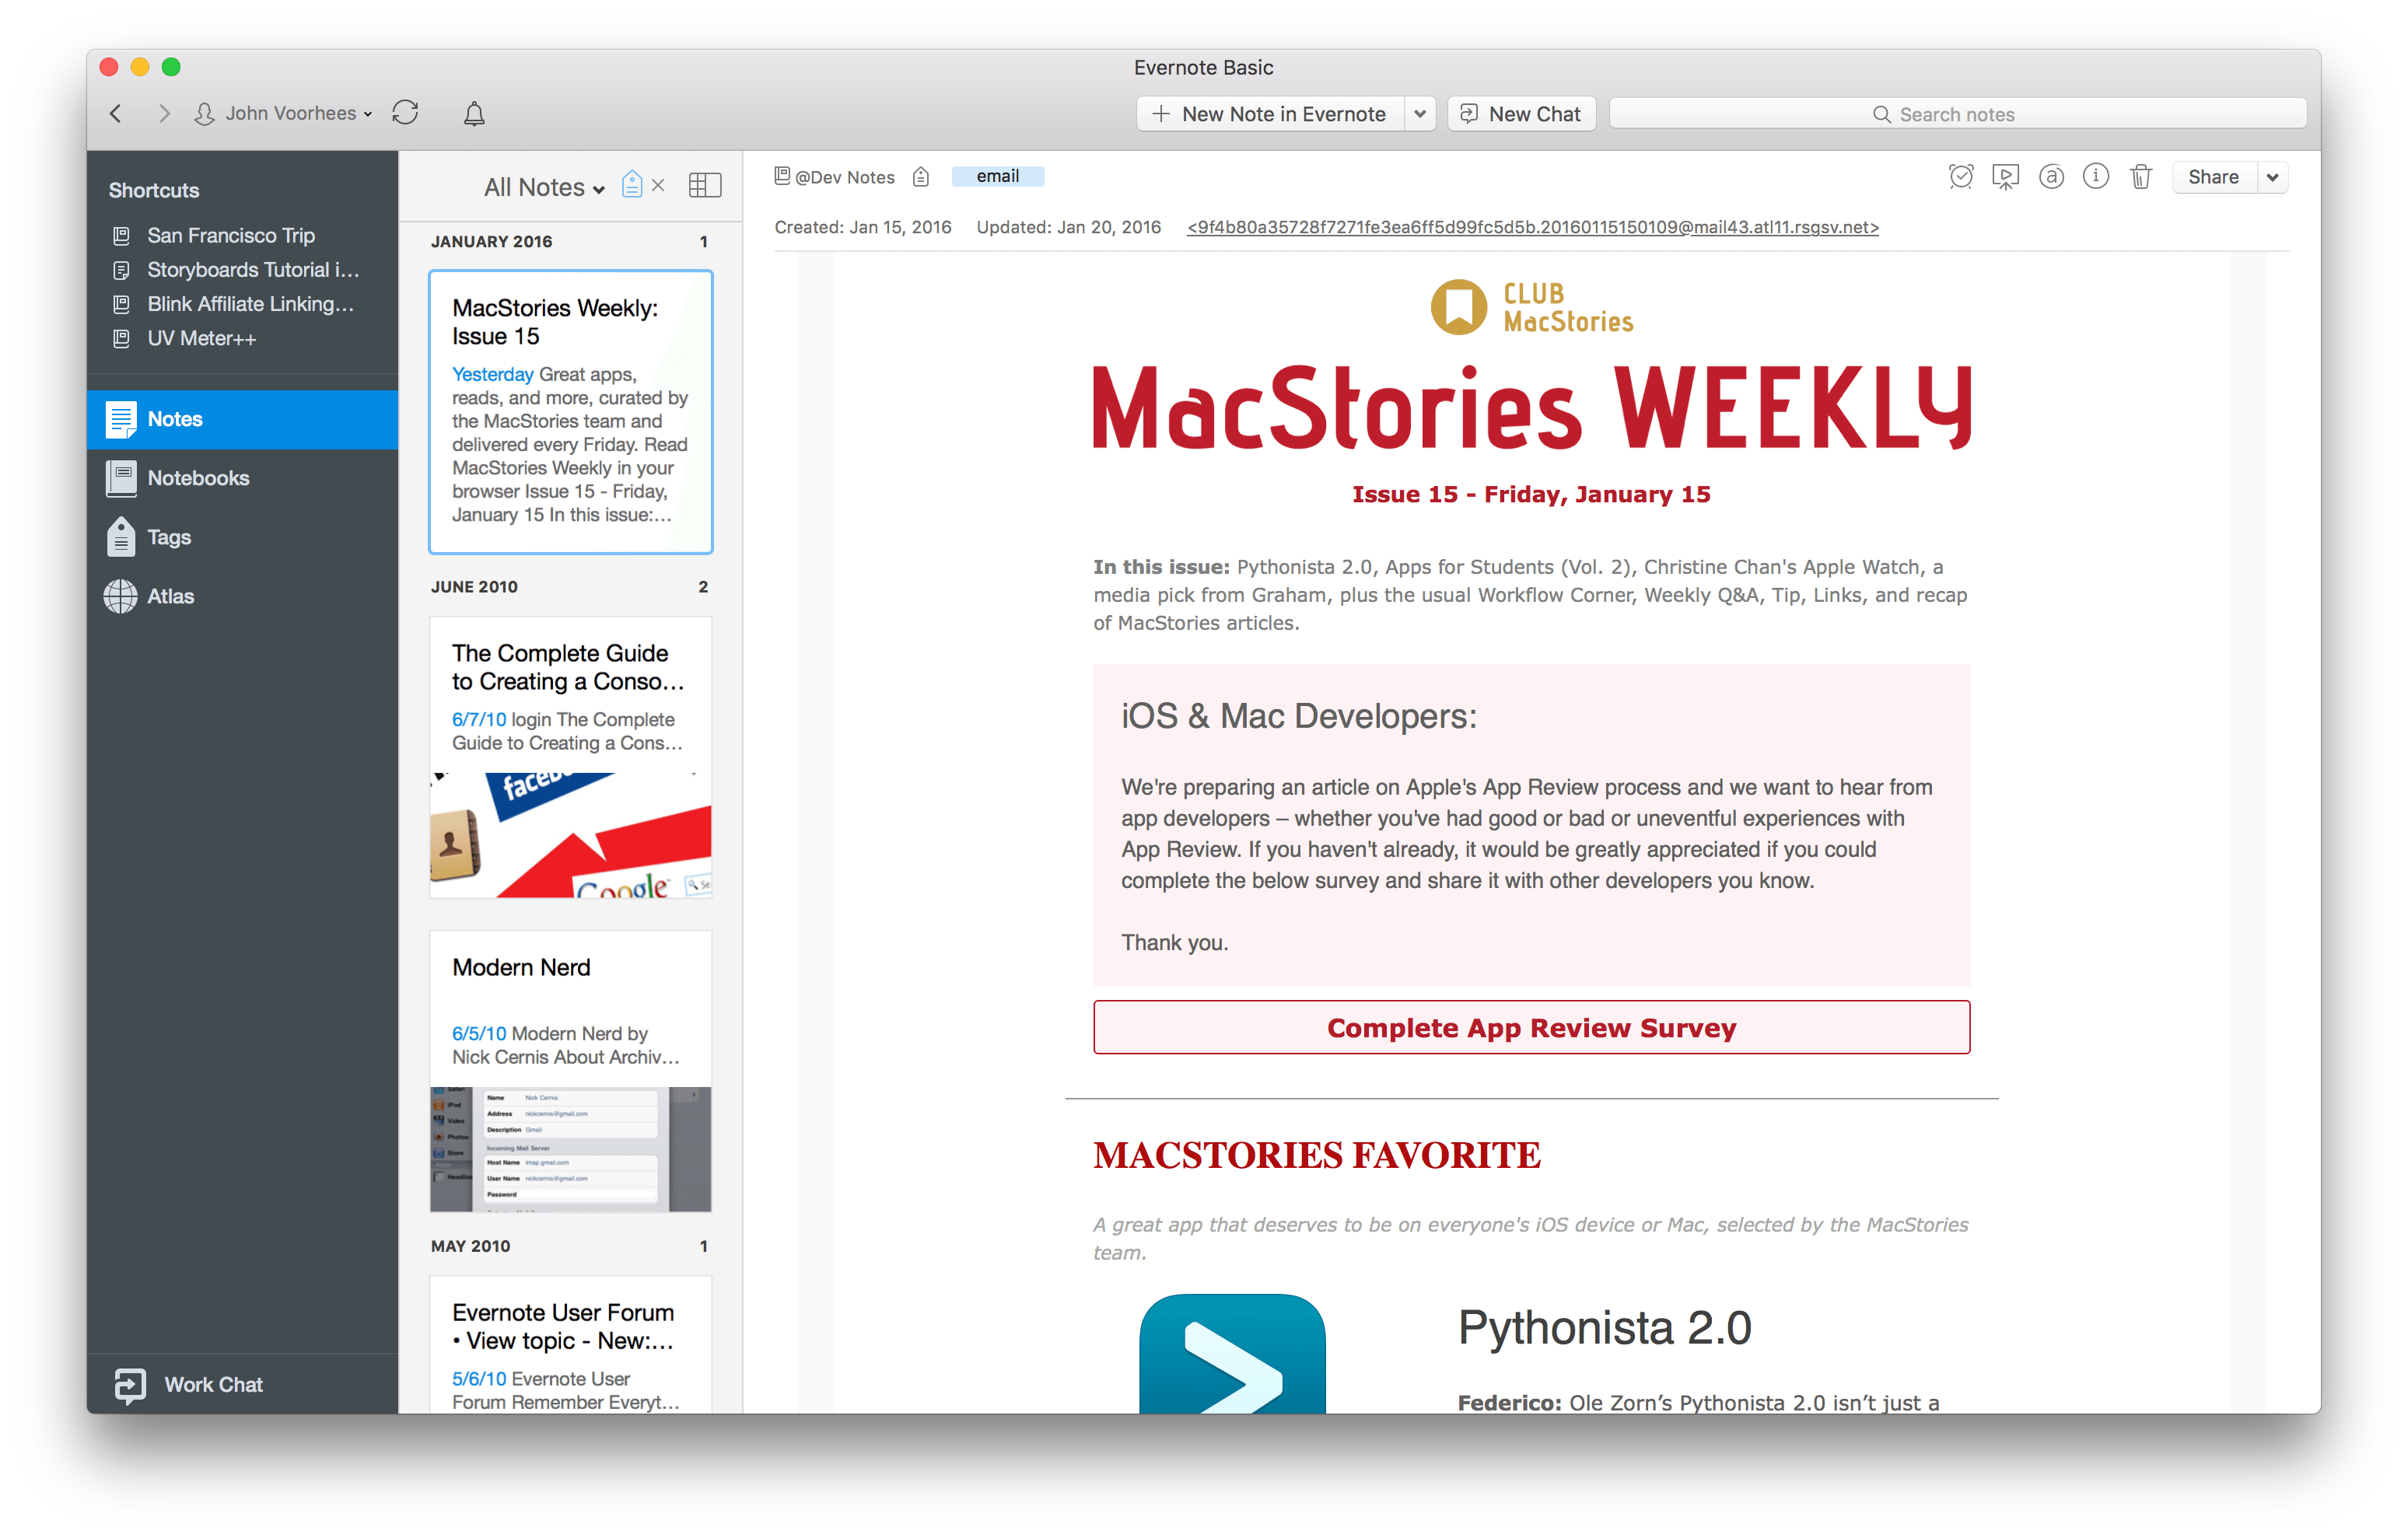 Club MacStories newsletter exported to Evernote